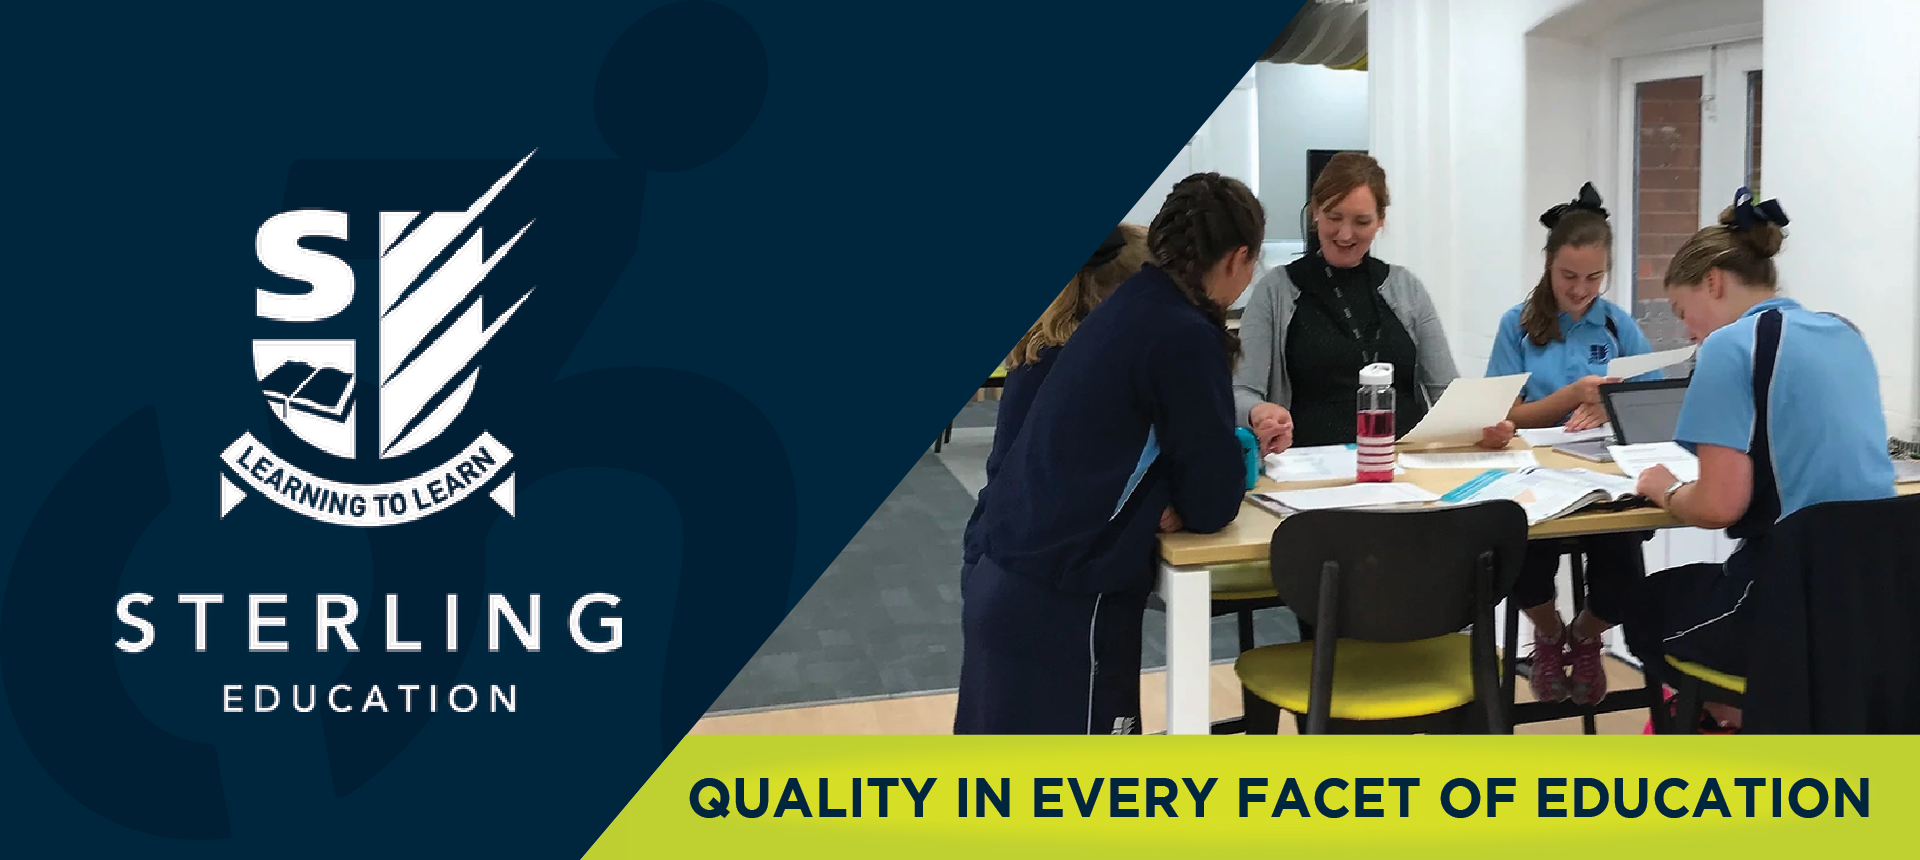 On left side of image, the Sterling Eductation logo. On right side of the image, a group of students stand around a table with their teacher. Underneath, the image reads: QUALITY IN EVERY FACET OF EDUCATION